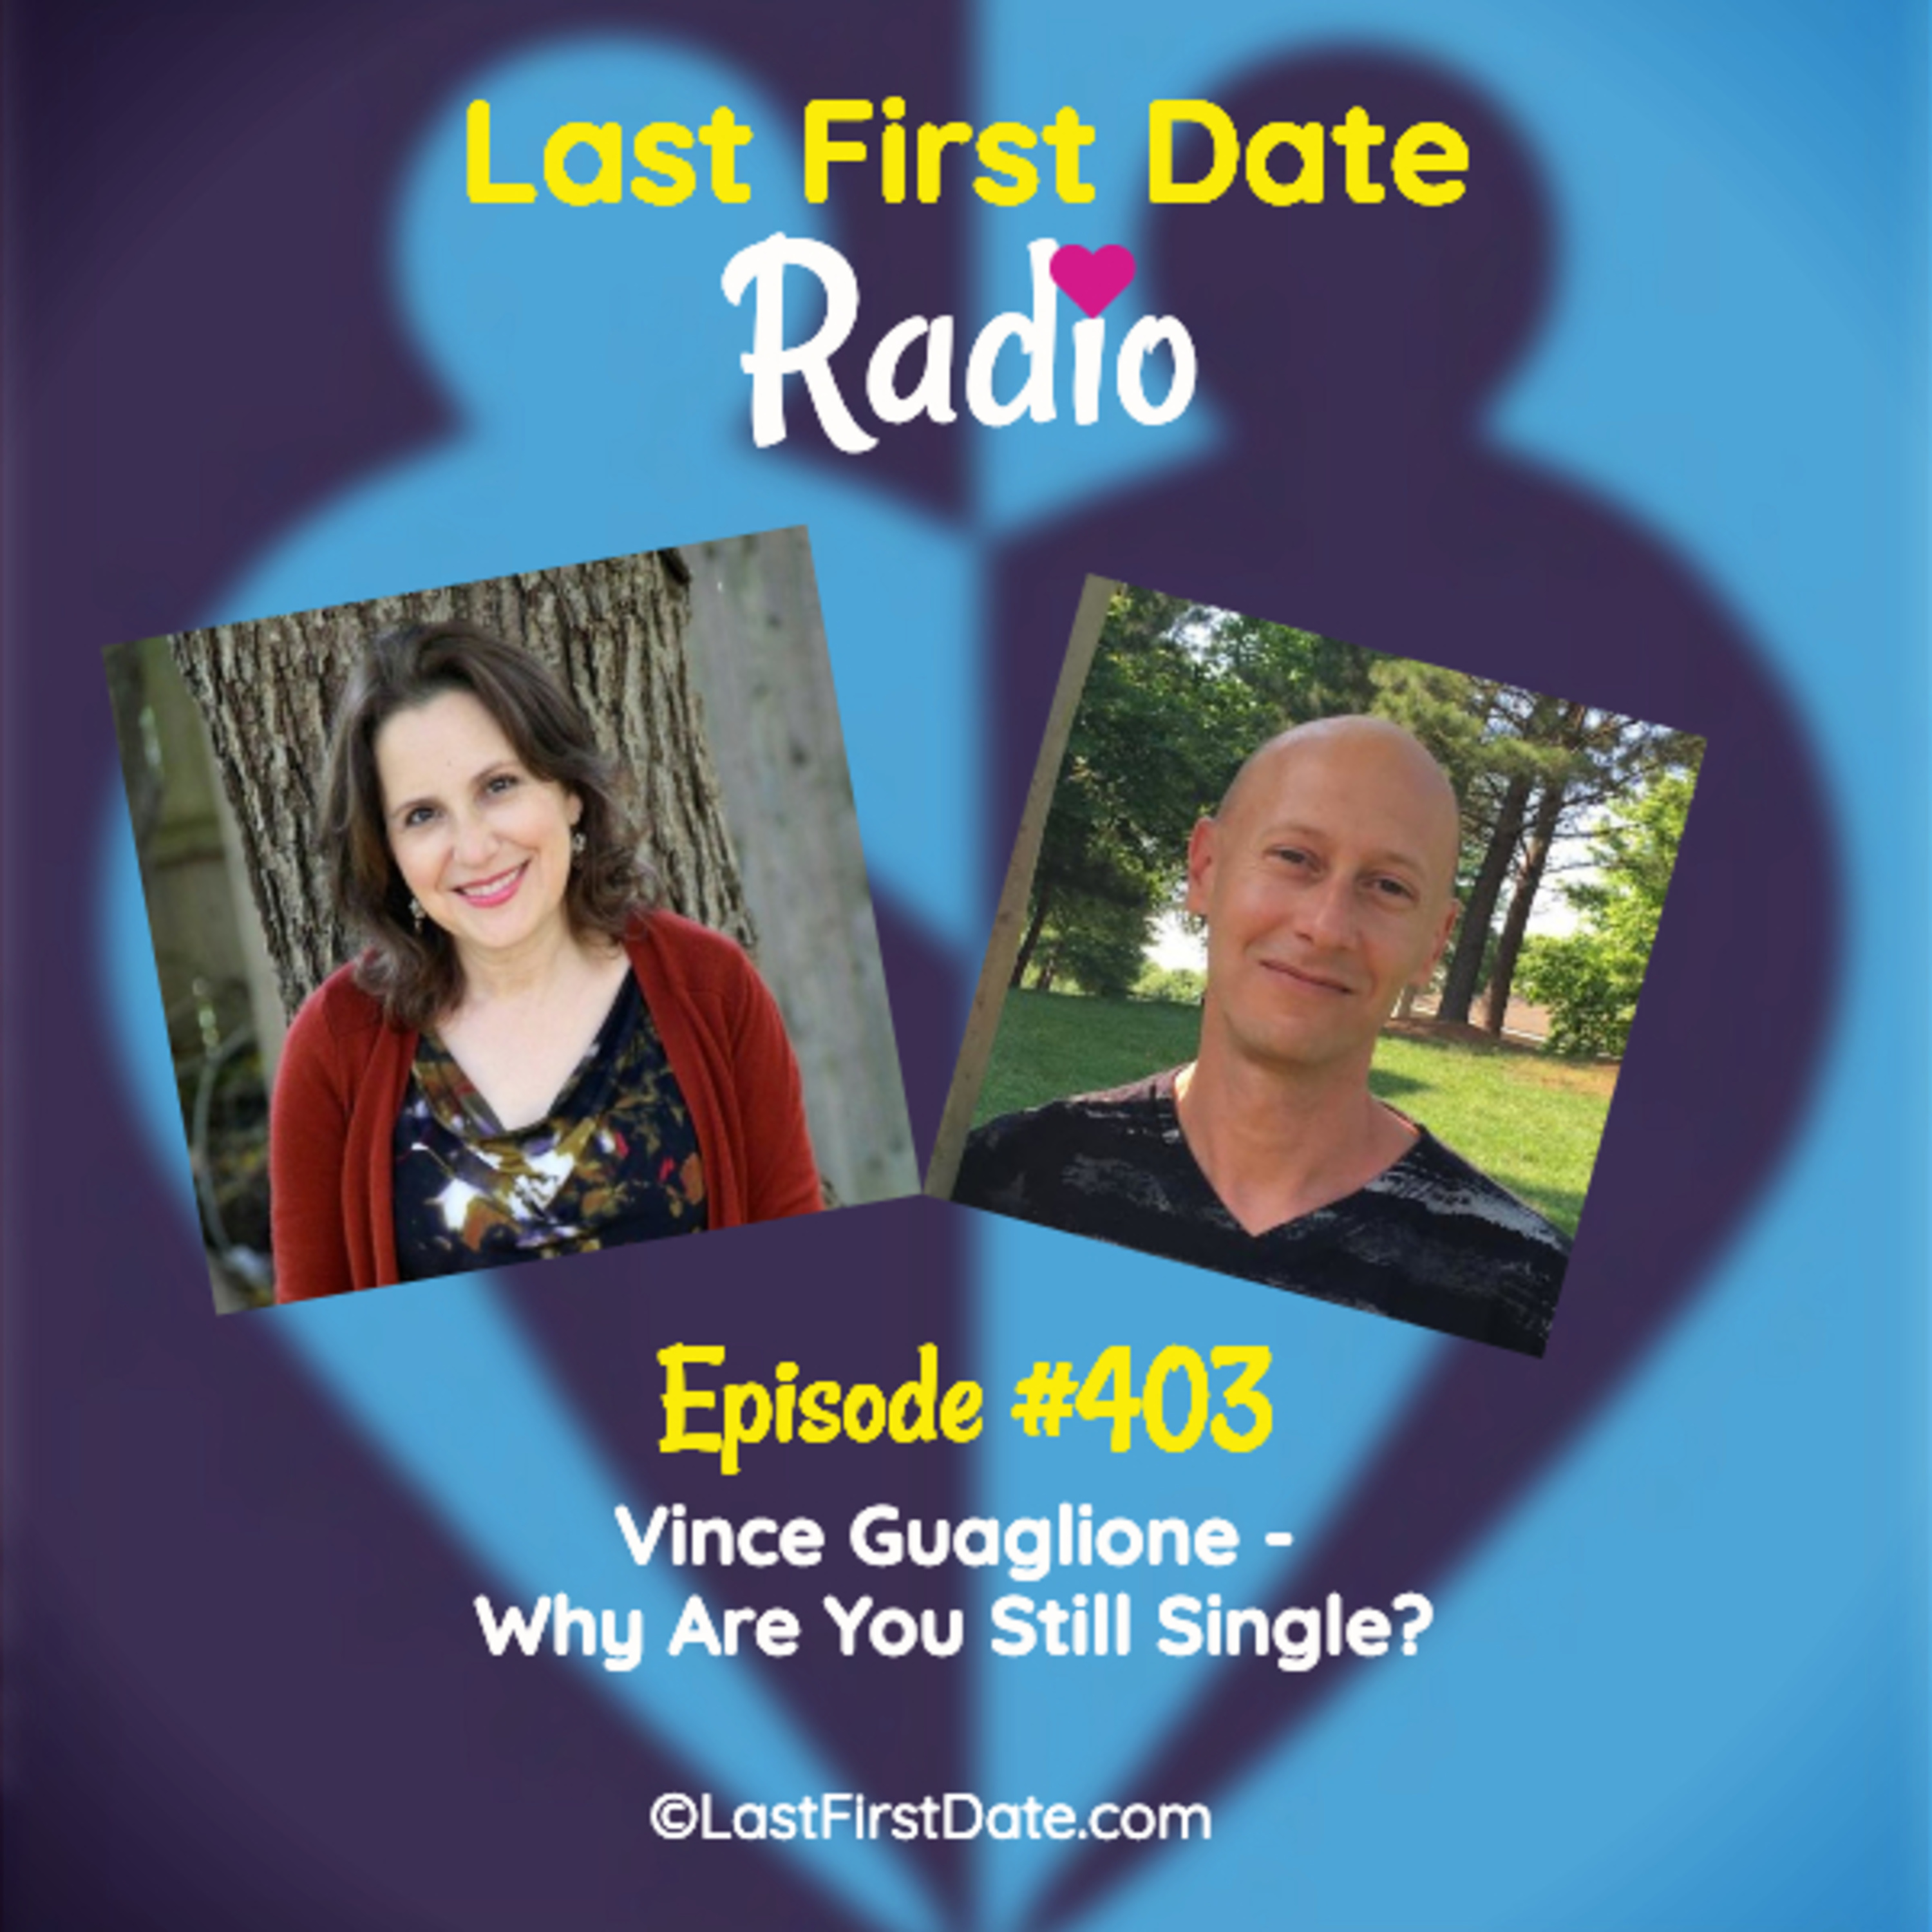 Last First Date Radio - EP 403: Vince Guaglione - Why Are You Still Single?